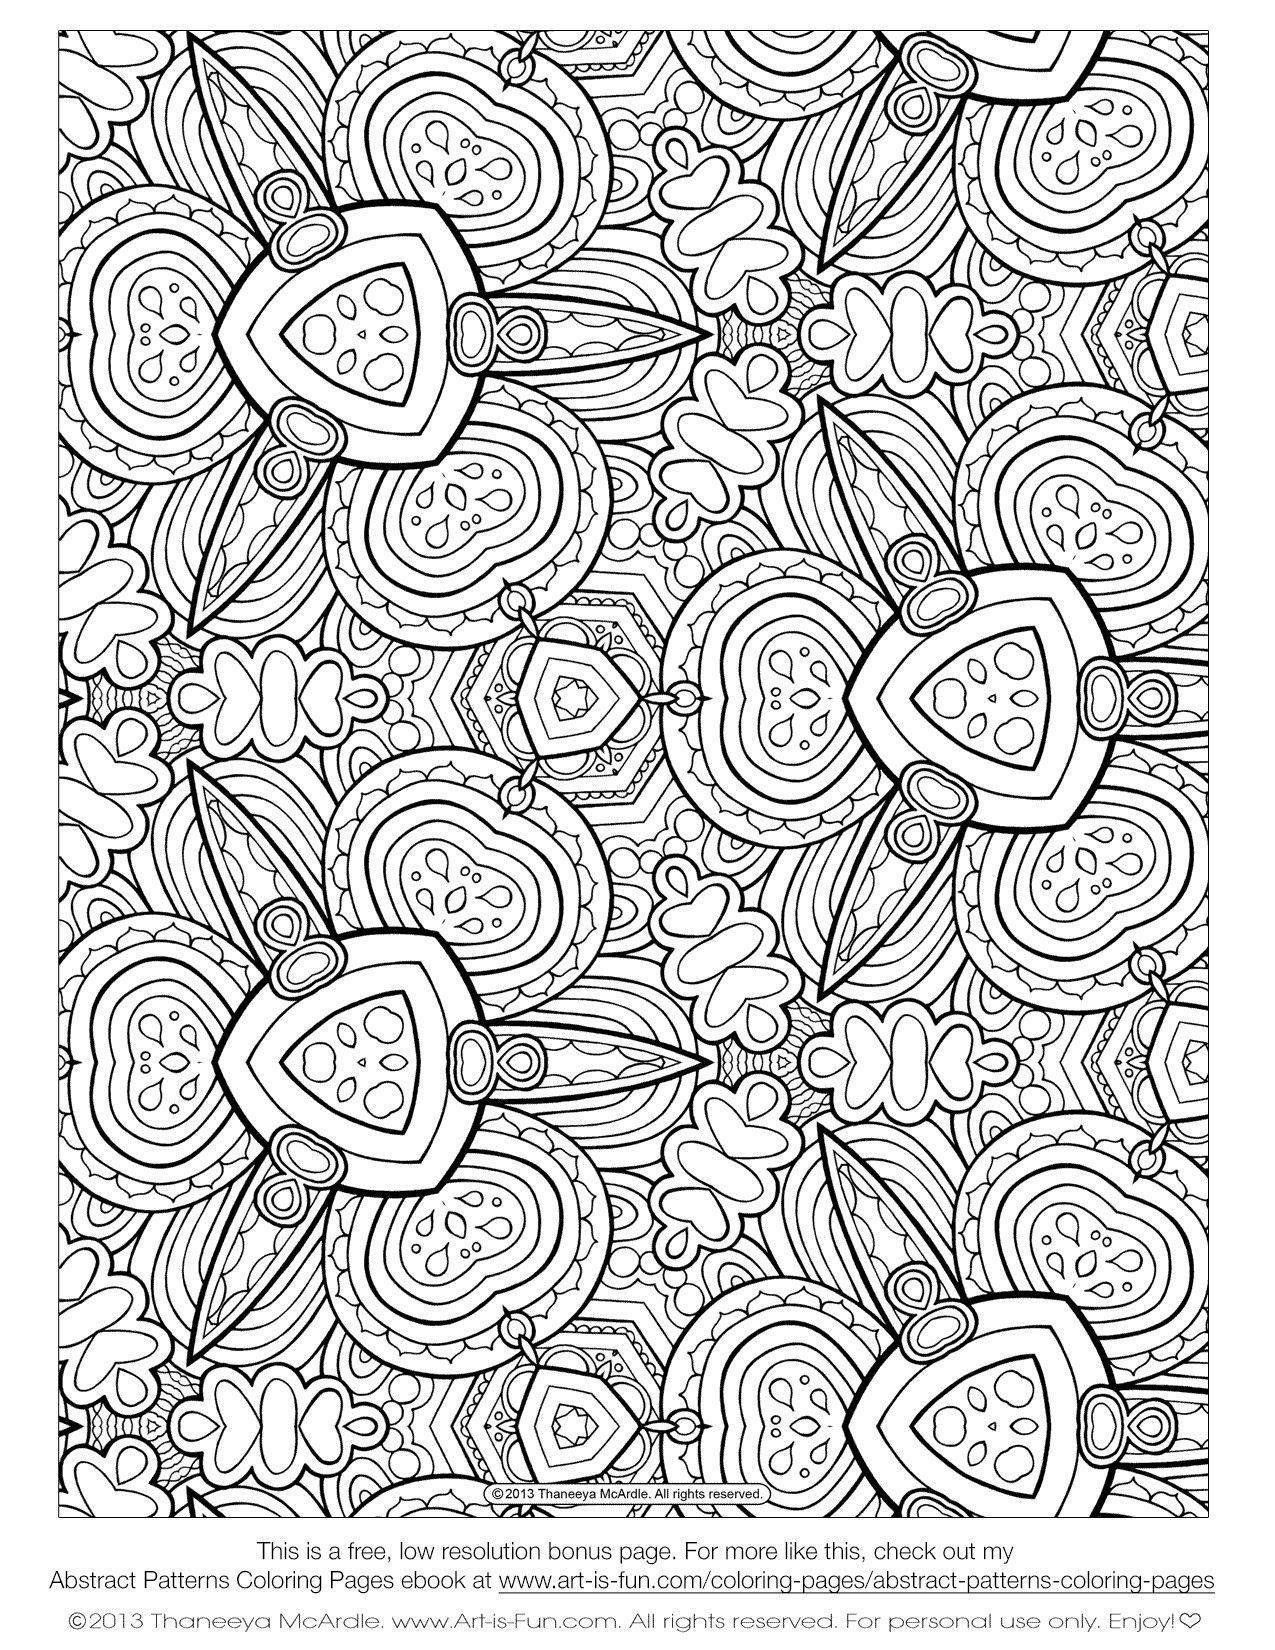 Free Printable Coloring Pages For Adults Advanced Dragons Best Of Free Printable Coloring In 2020 Abstract Coloring Pages Cool Coloring Pages Inside Out Coloring Pages